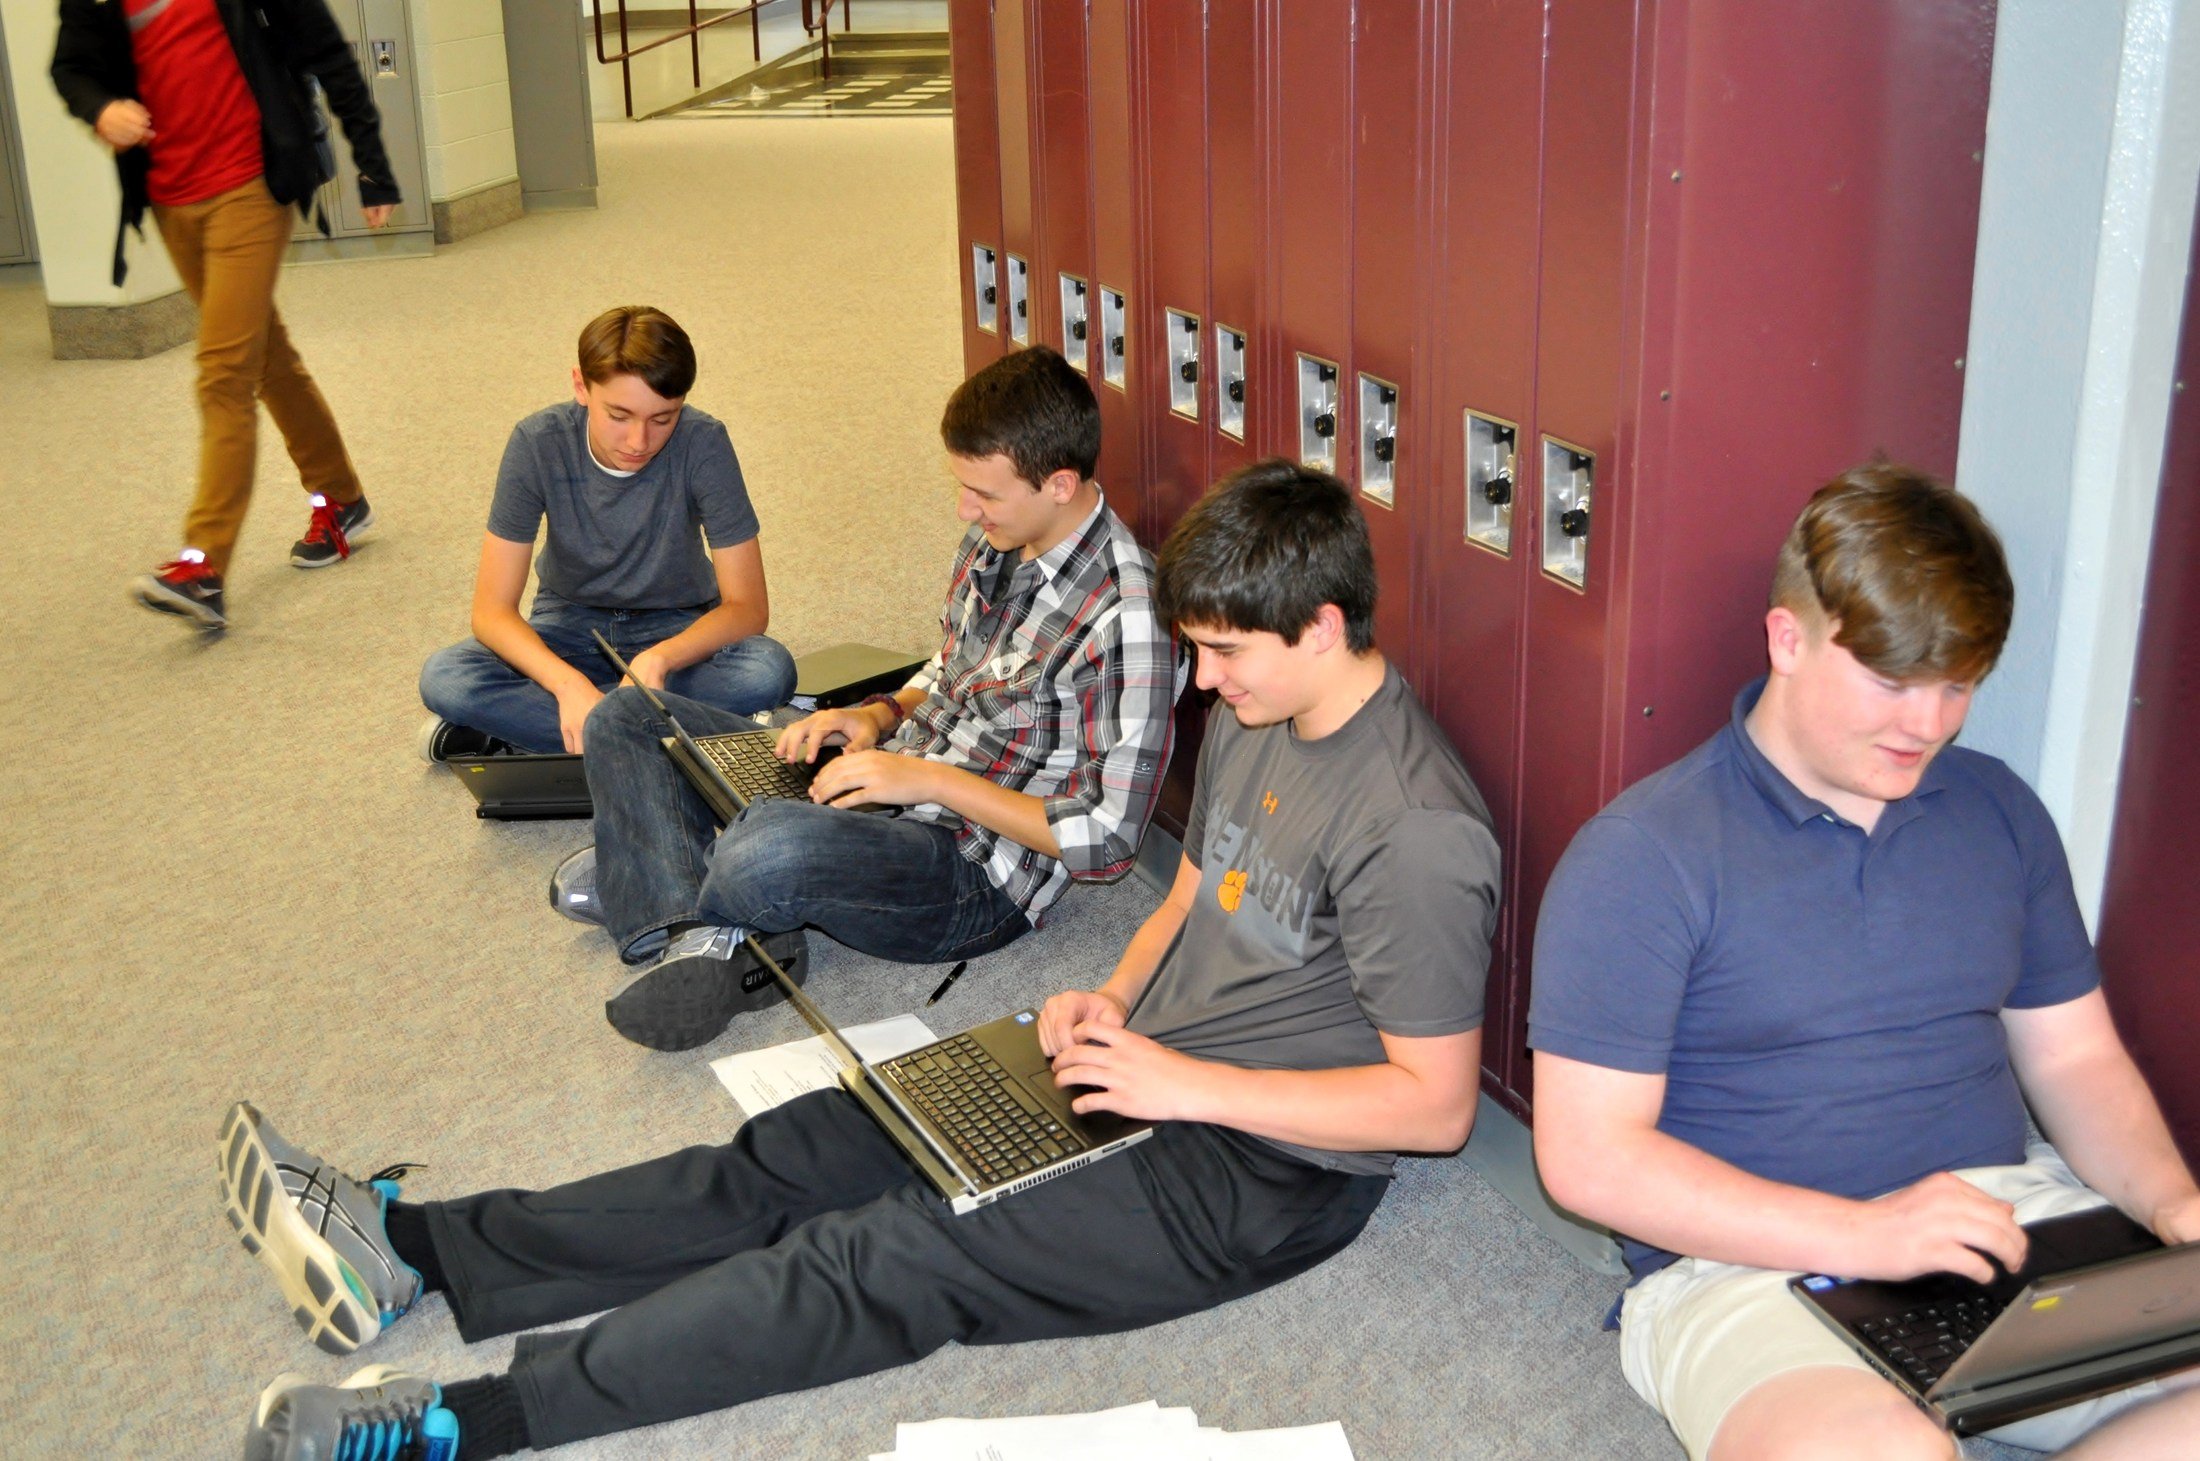 Group of students on laptops